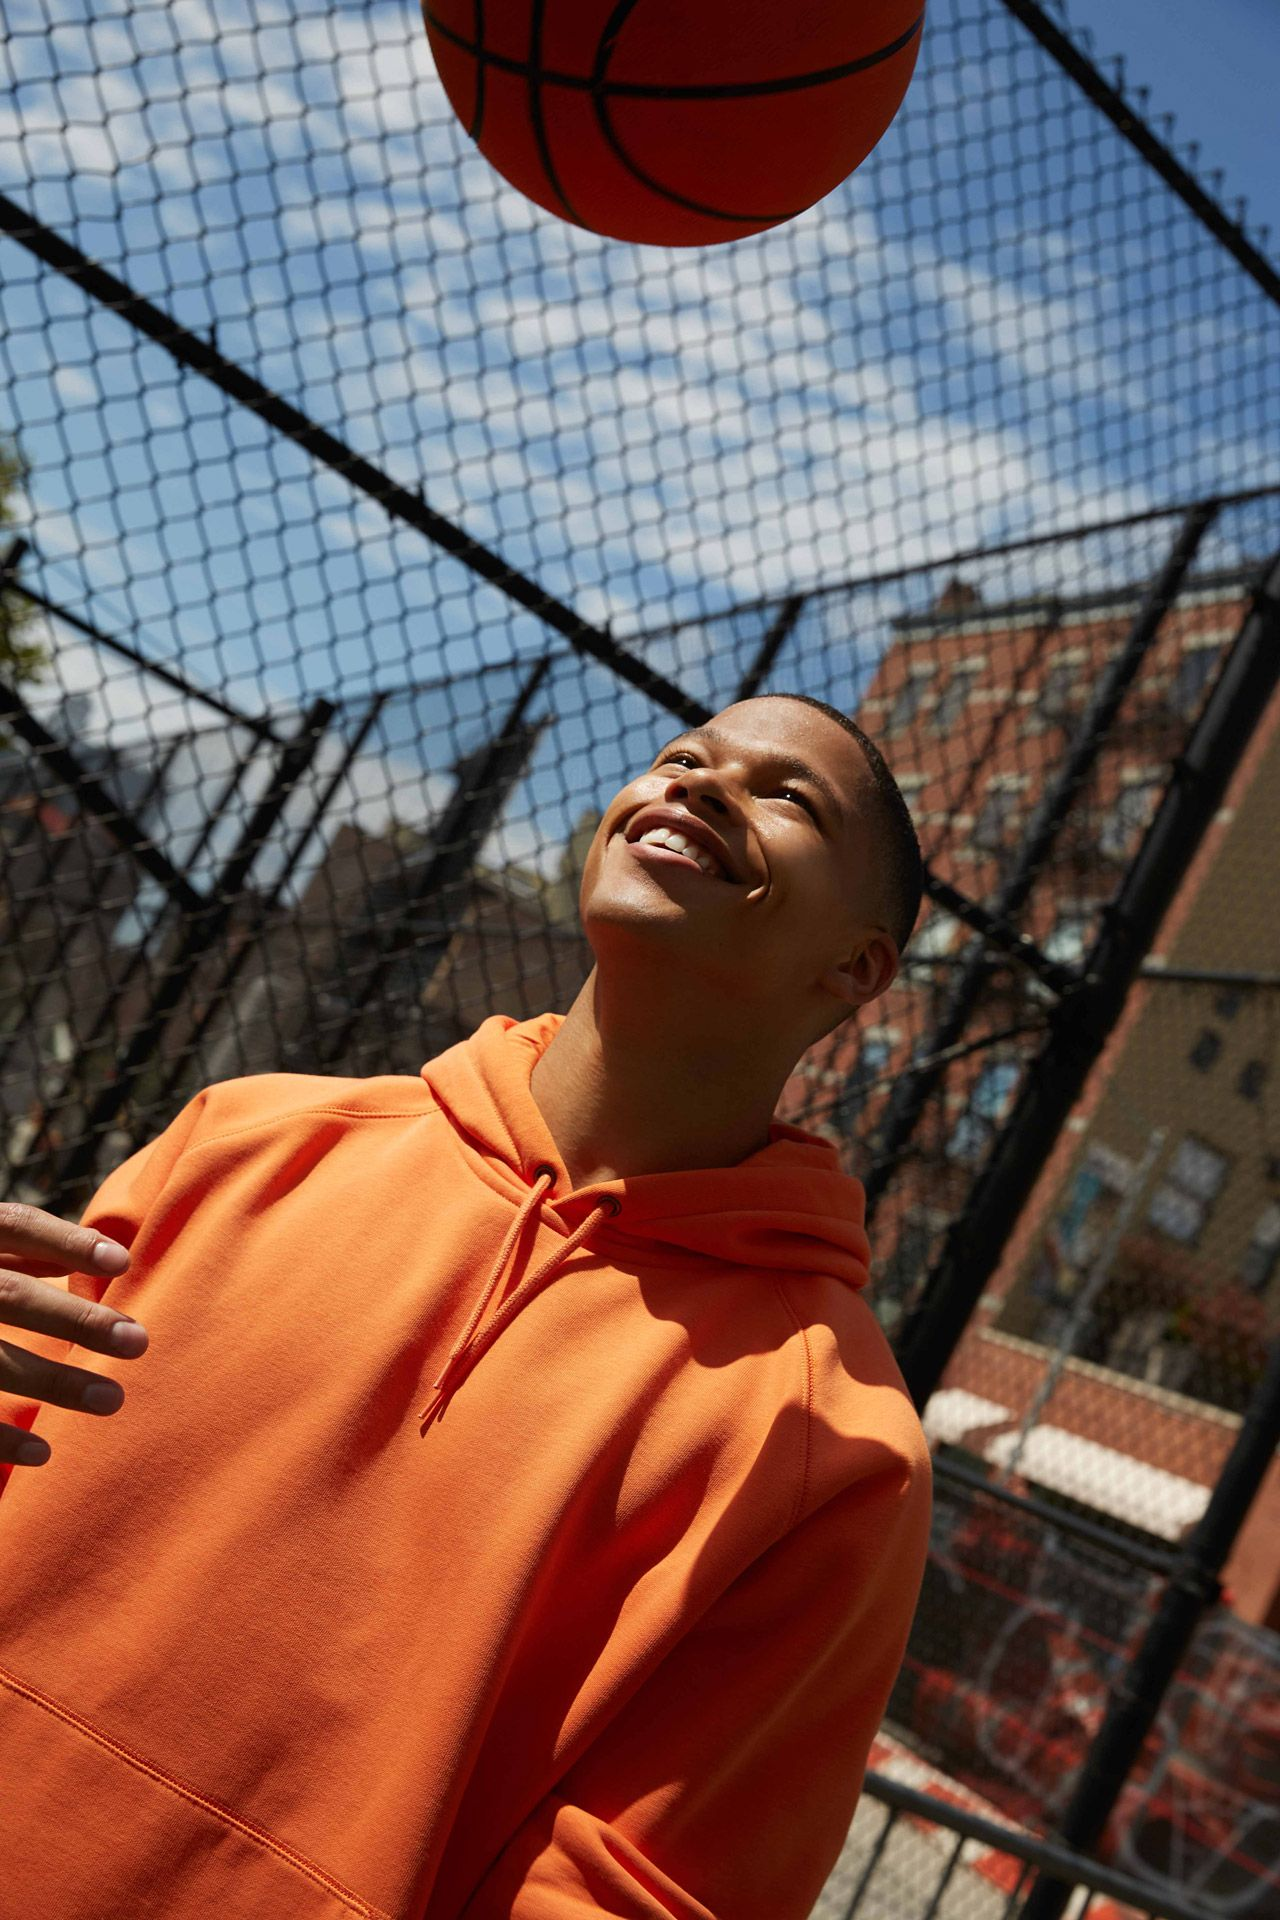 young black male model on outside basketball court smiling in the sun throwing basket ball into the air wearing bright orange hoodie photographed by Oumayma B Tanfous for Samsung phone campaign